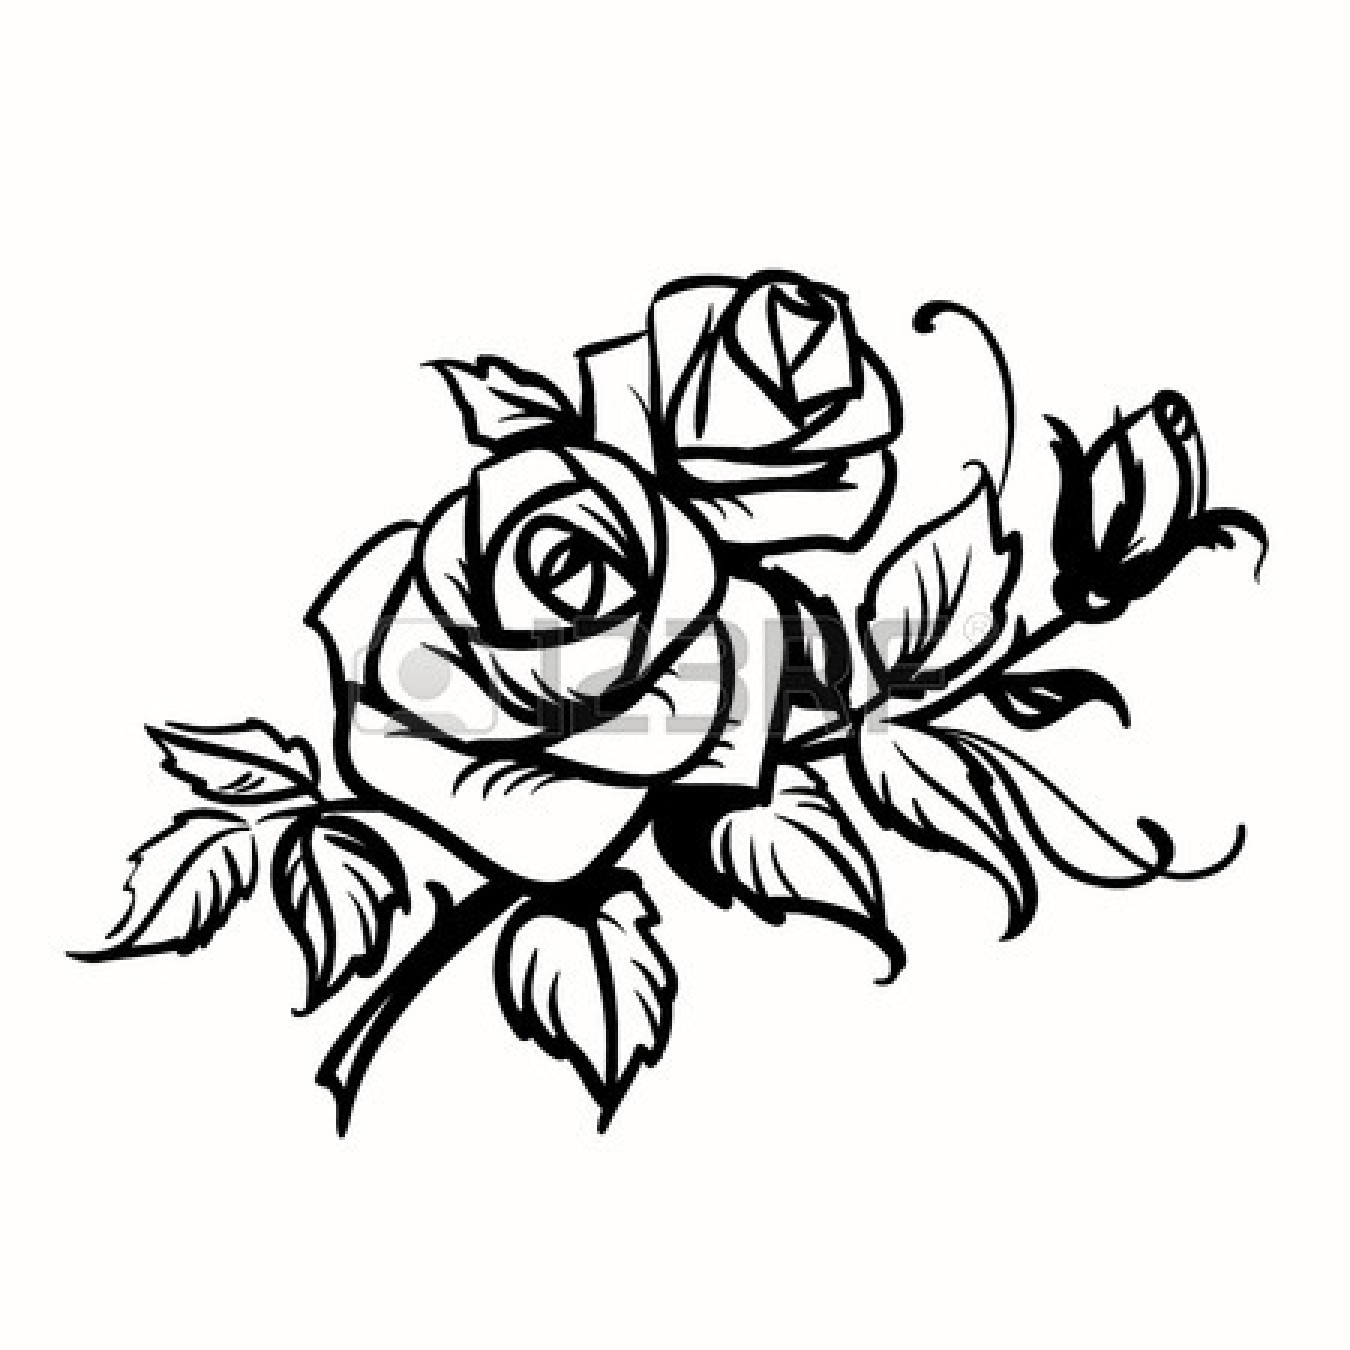 1350x1350 White Rose clipart rose outline